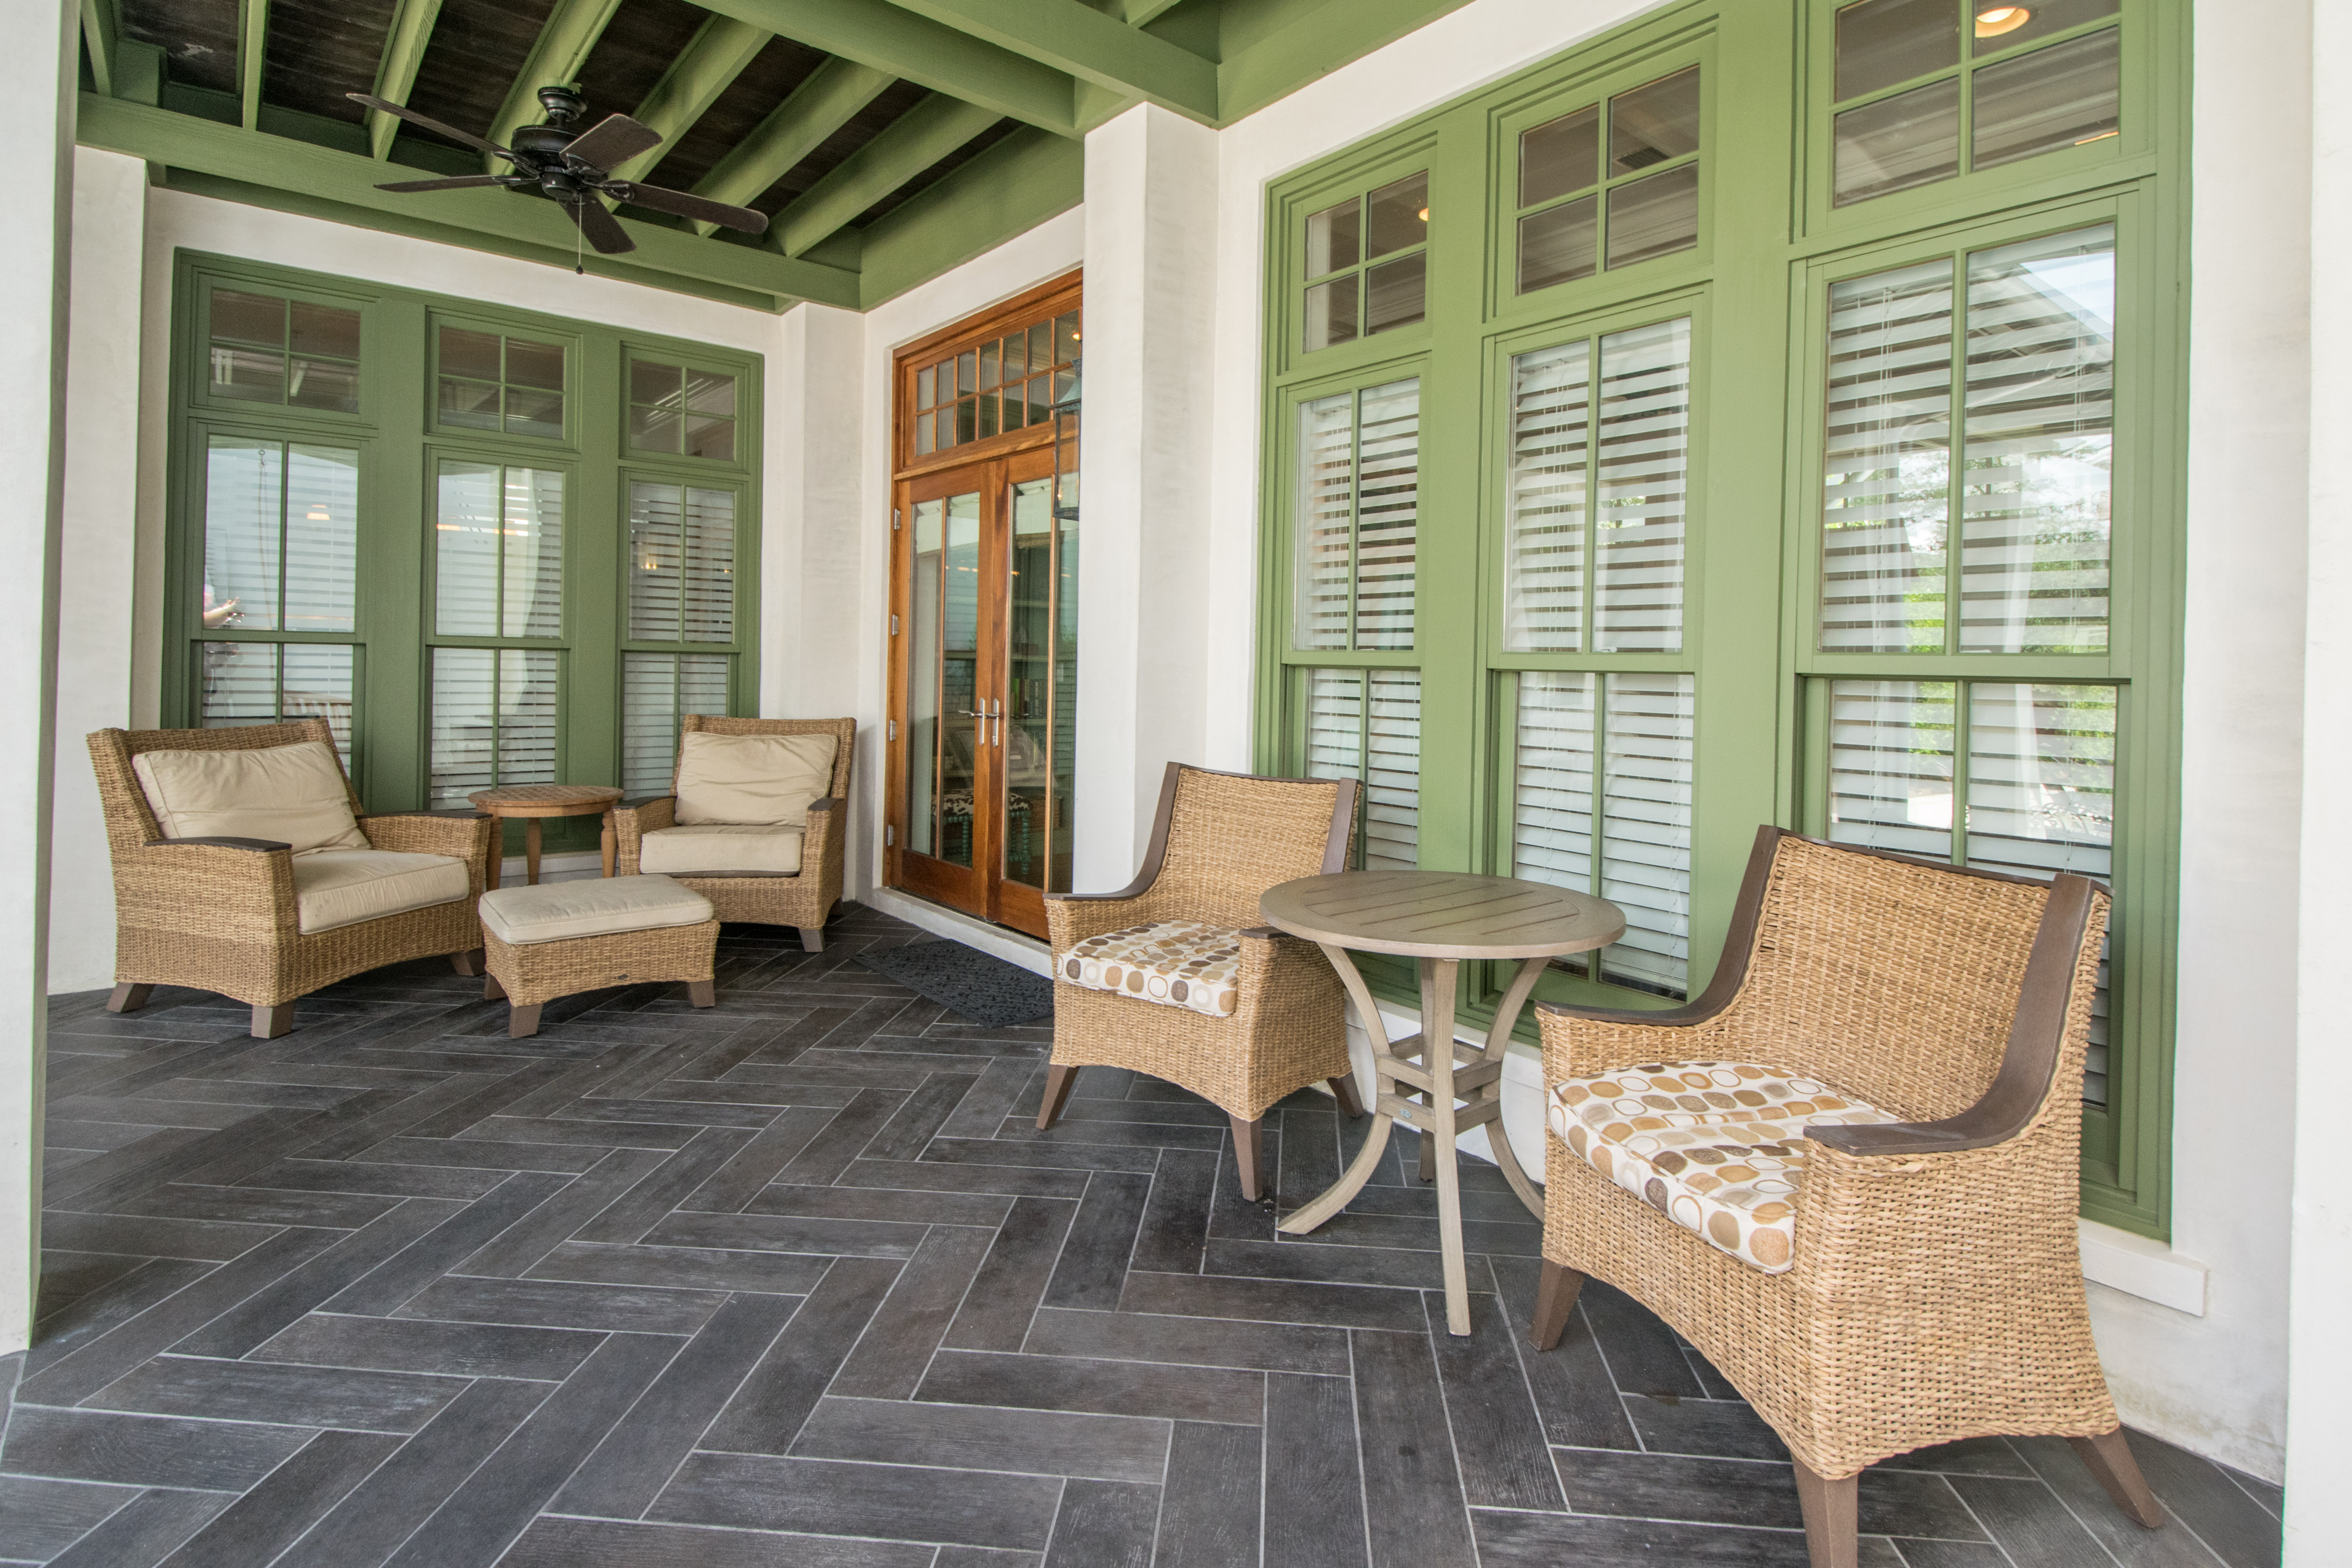 Plenty of Shaded Patio area overlooking the pool and spa